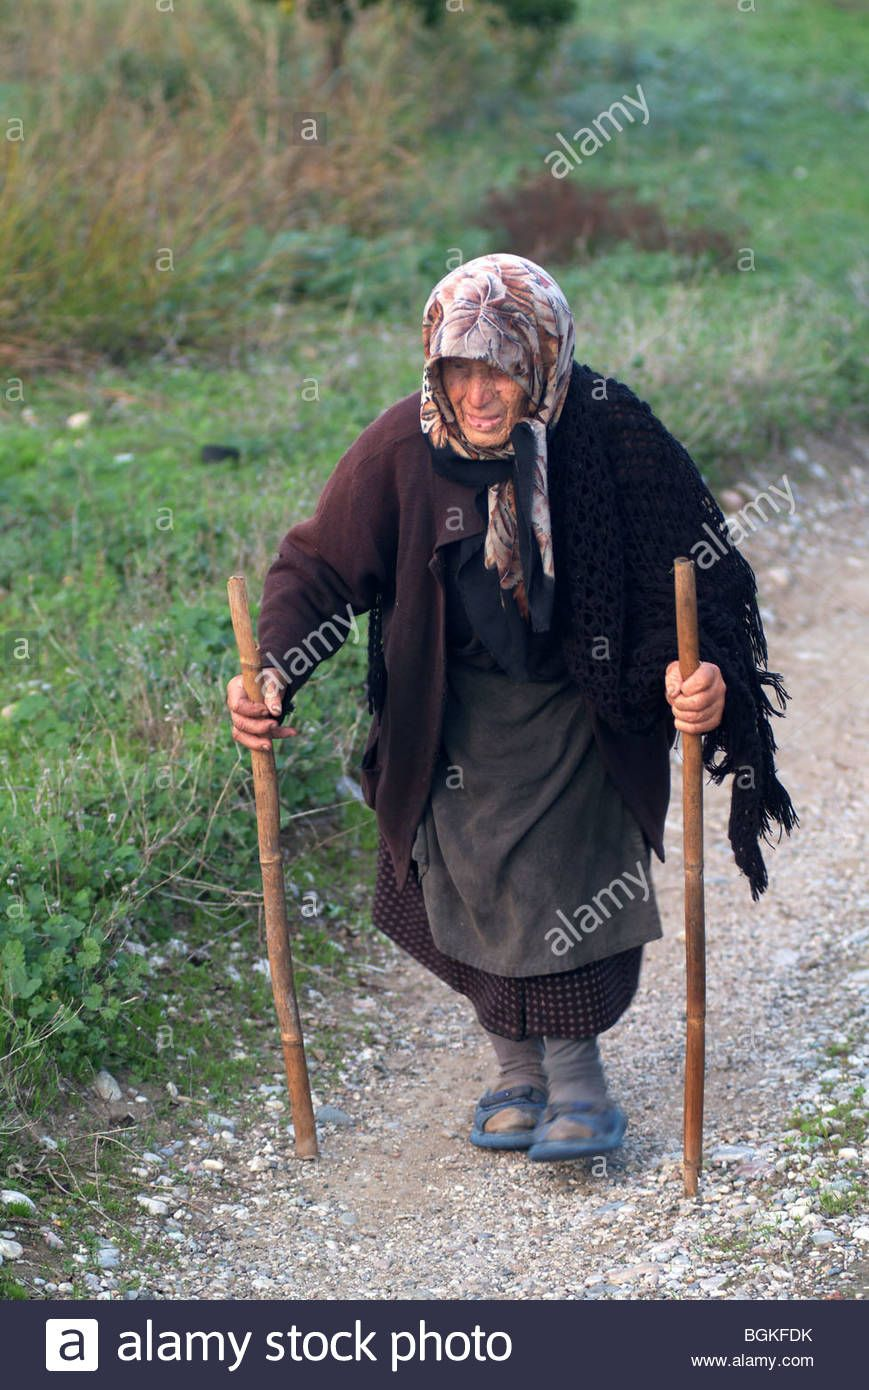 Greek Grandma Yaya Google Search Greek Women Old Greek Olds